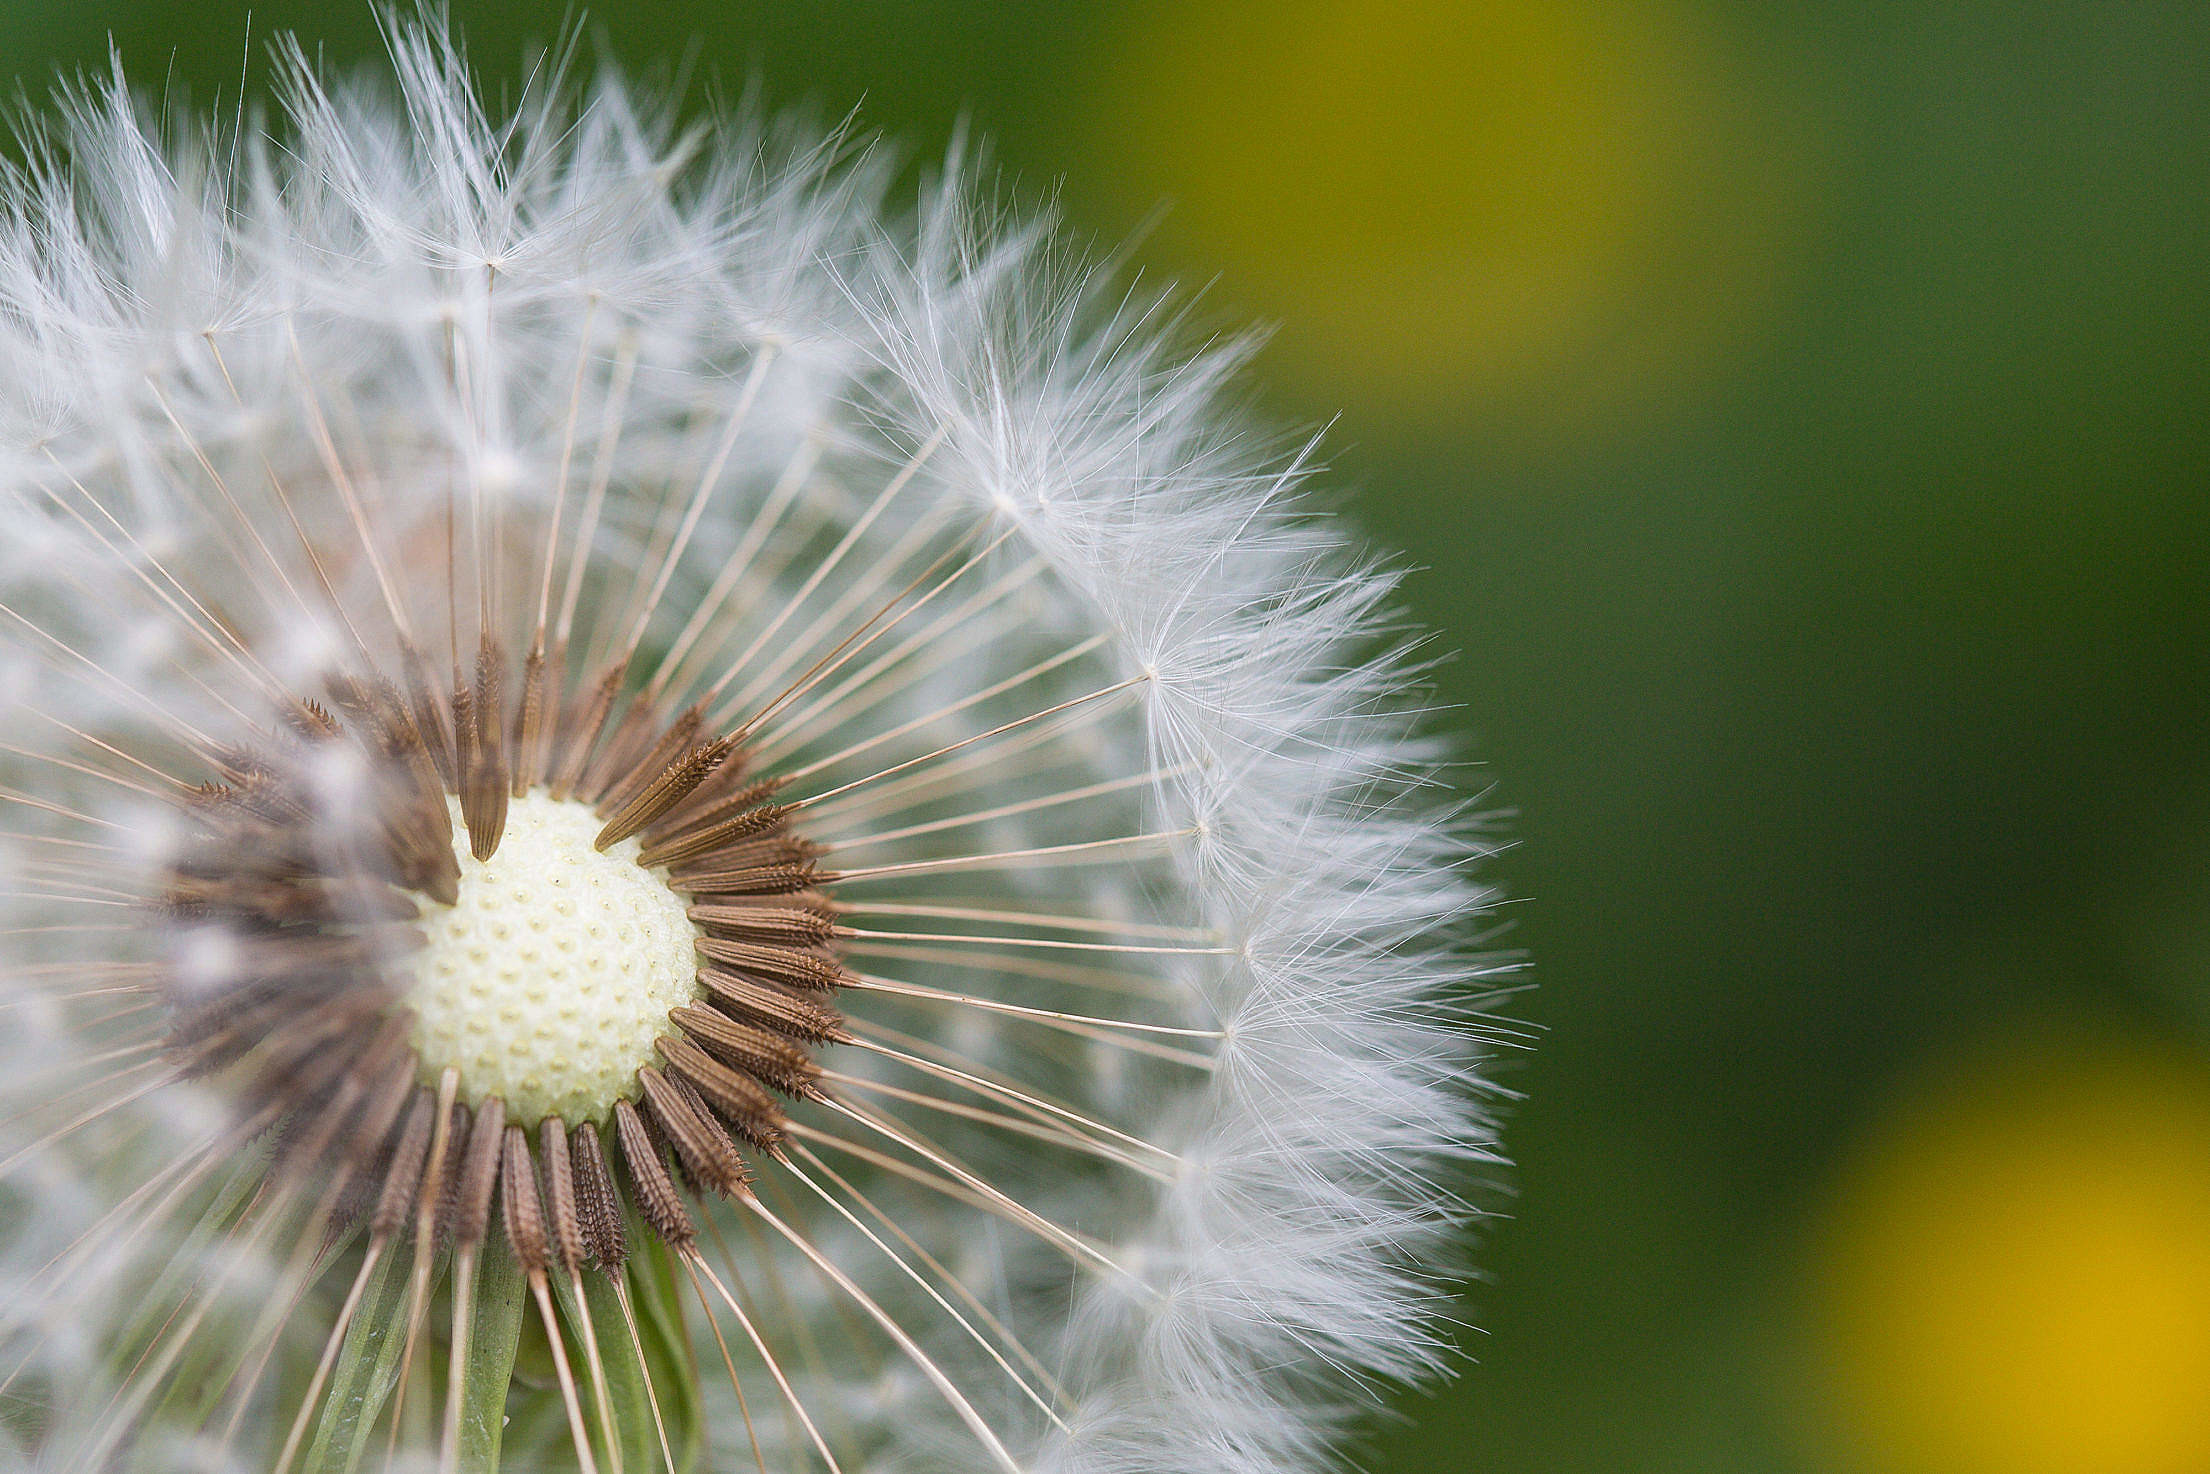 Res: 2210x1474, (click to download) Half-Naked Flower Blowball/Dandelion FREE Stock Photo